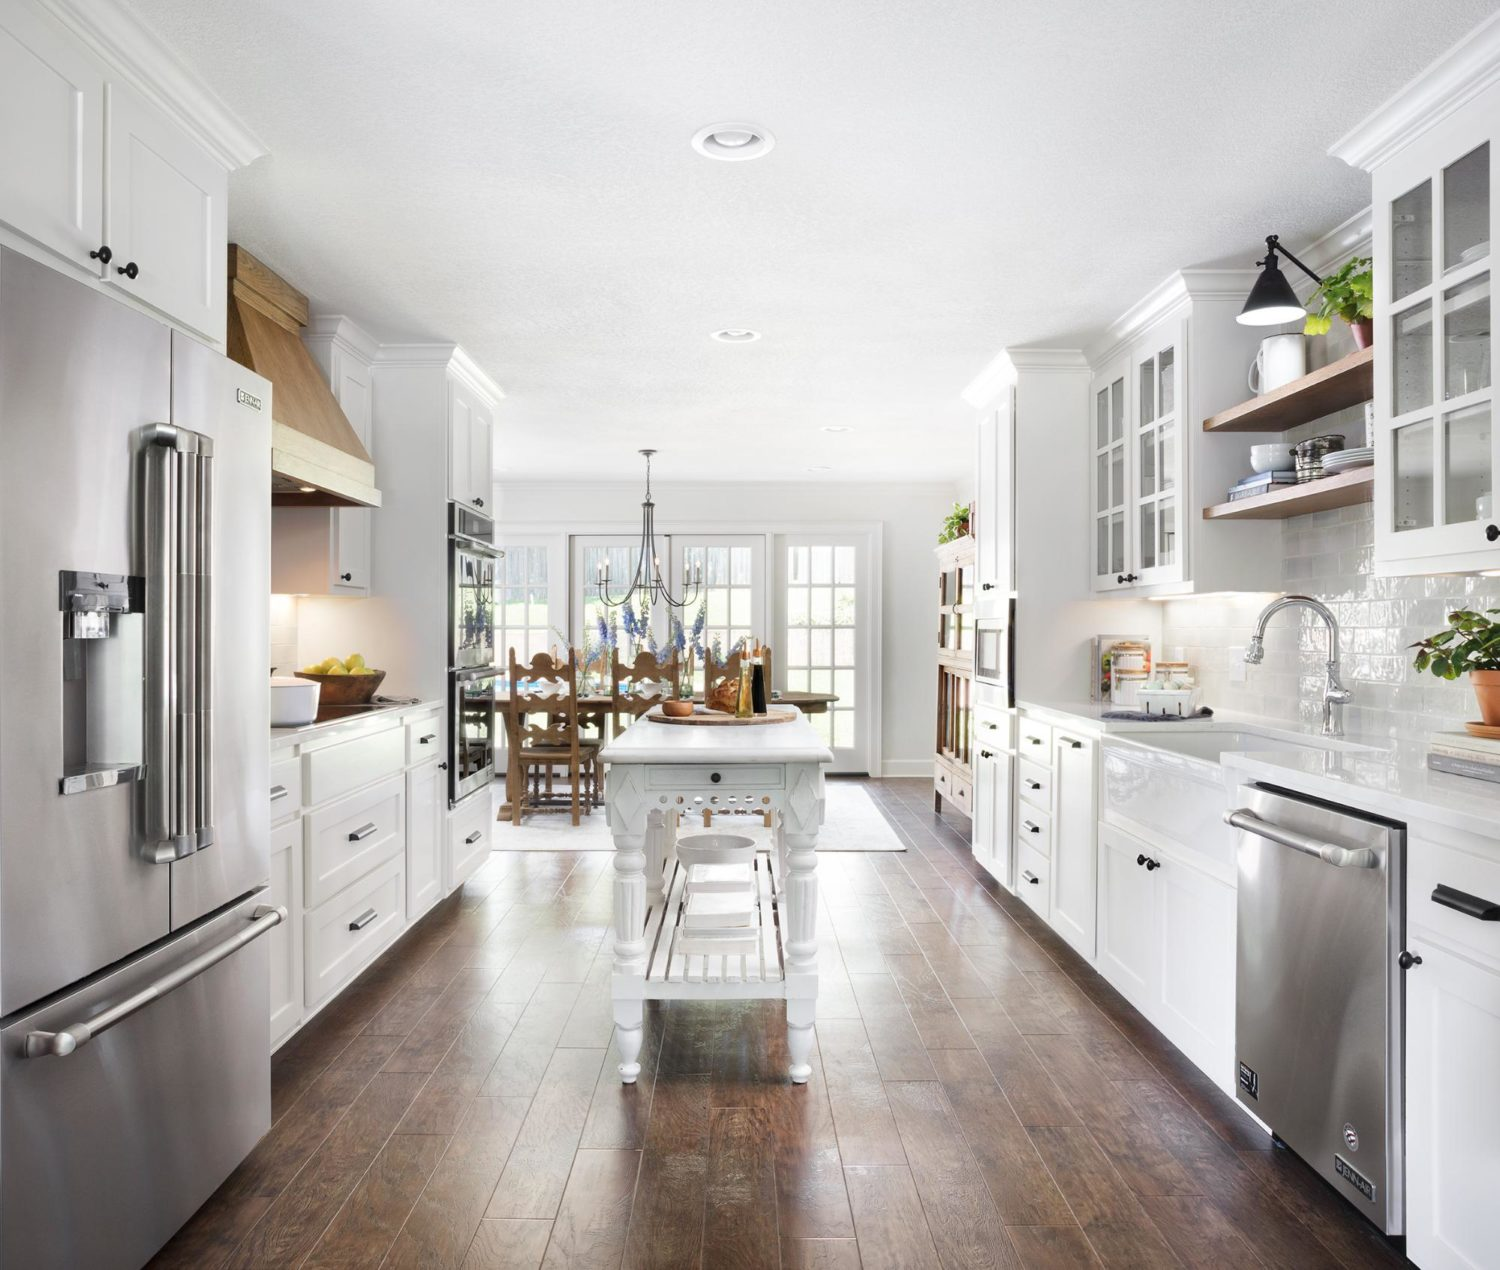 Galley Kitchen Designs Pictures Ideas Tips From Hgtv: Chip & Joanna Gaines' Mountain Home